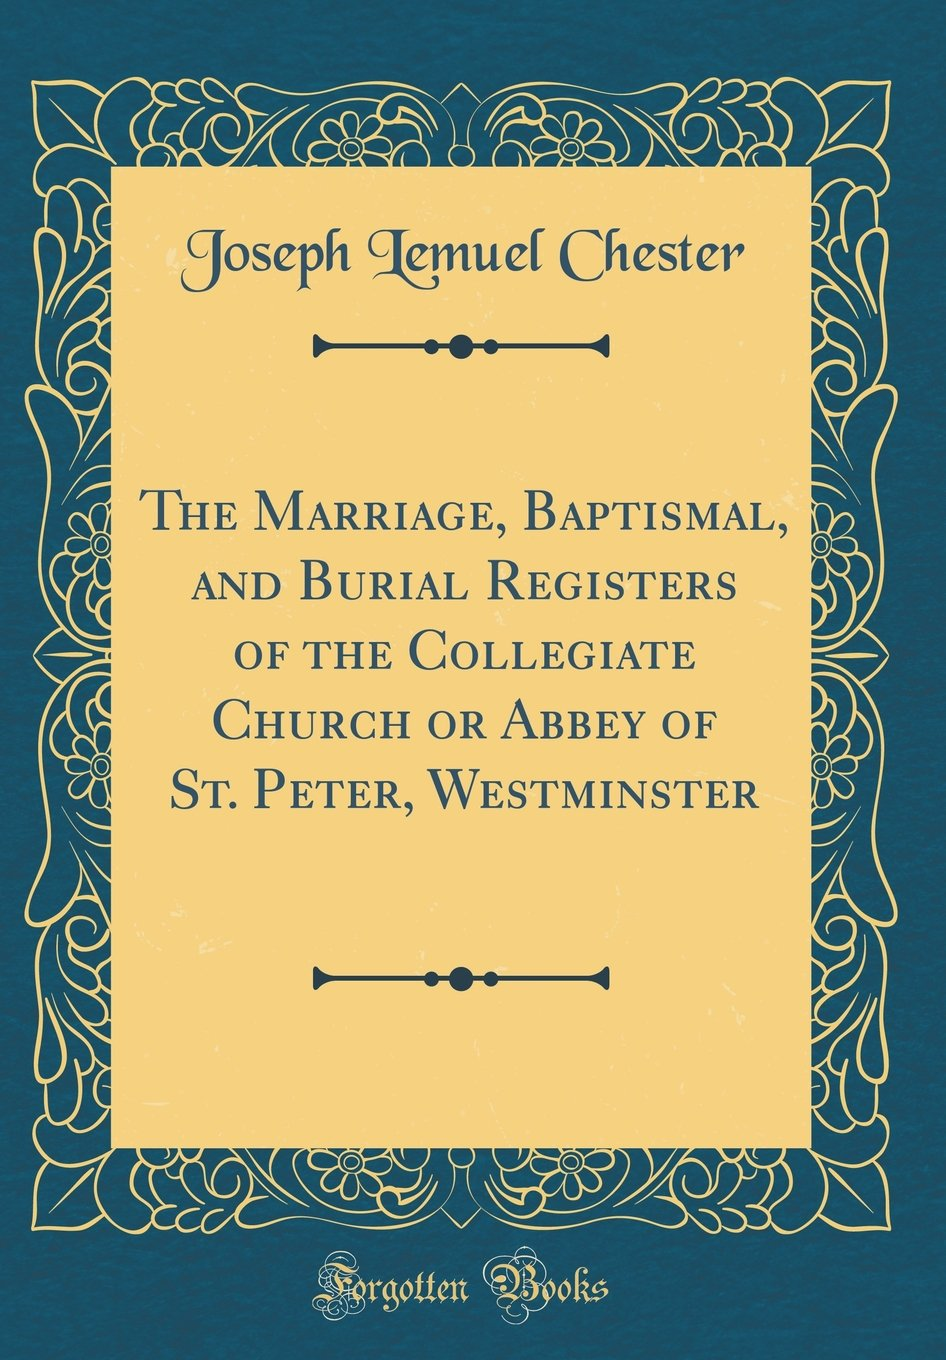 The Marriage, Baptismal, and Burial Registers of the Collegiate Church or Abbey of St. Peter, Westminster (Classic Reprint) pdf epub